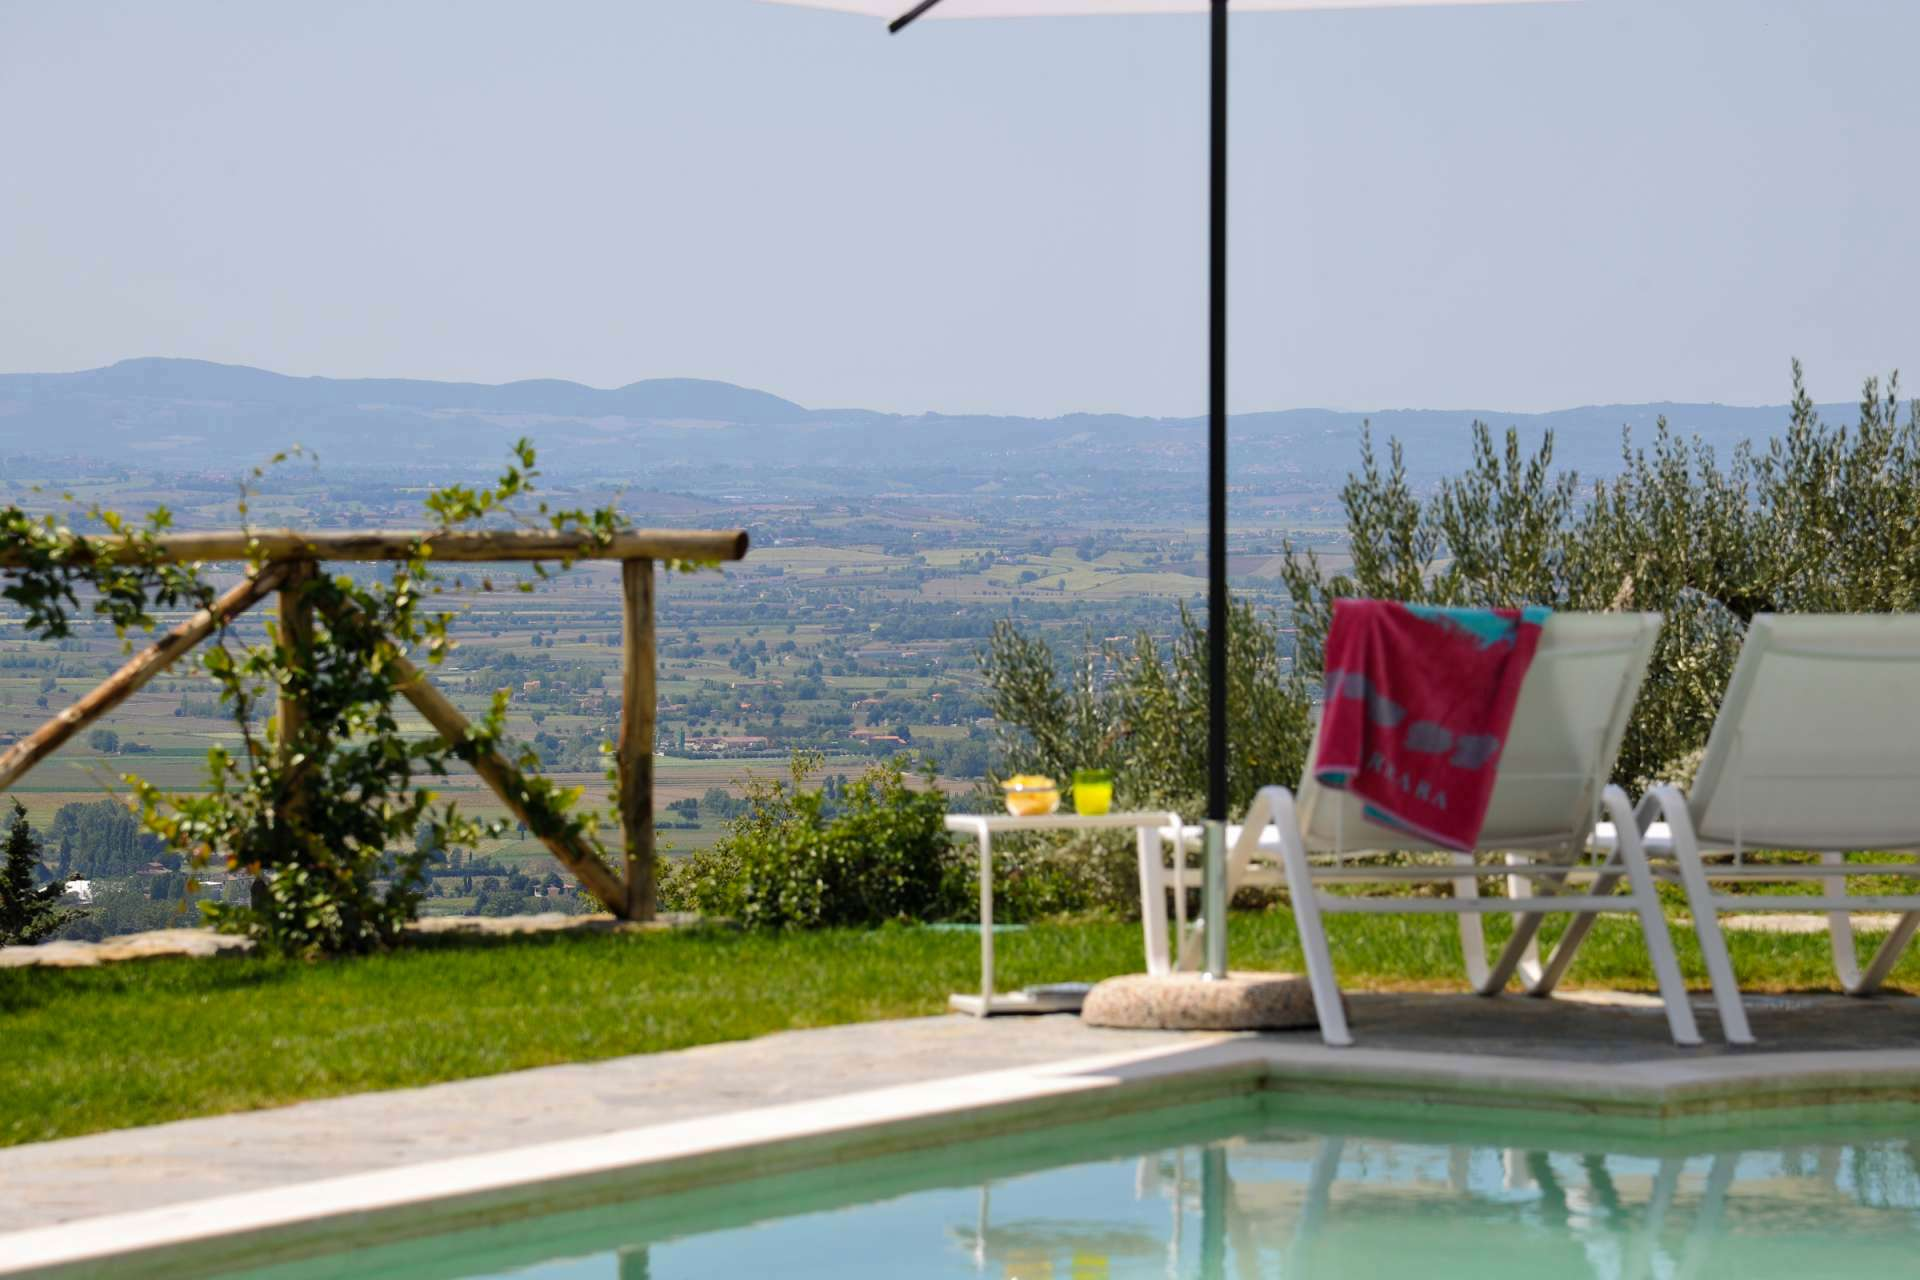 Italian Romance: Why Italy is the Perfect Spot for a Romantic Villa Getaway